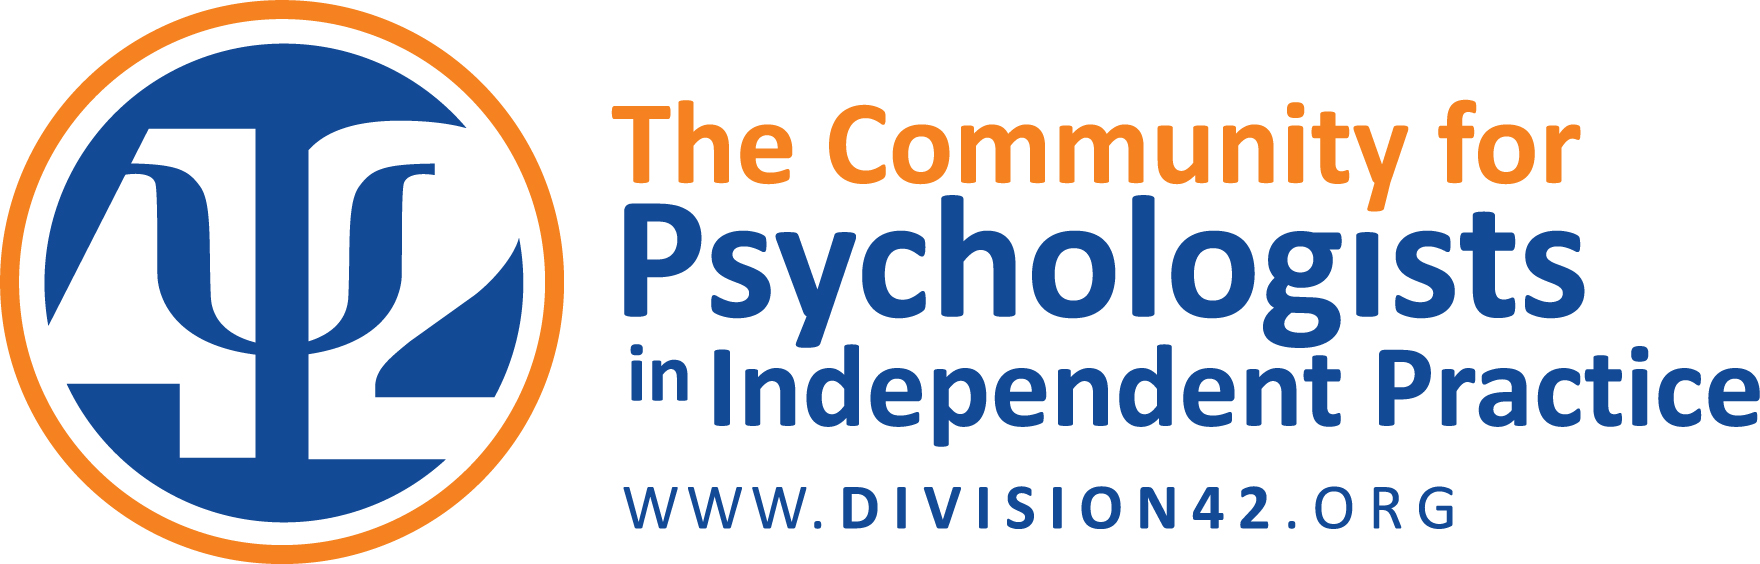 APA Division 42 Psychologists in Independent Practice